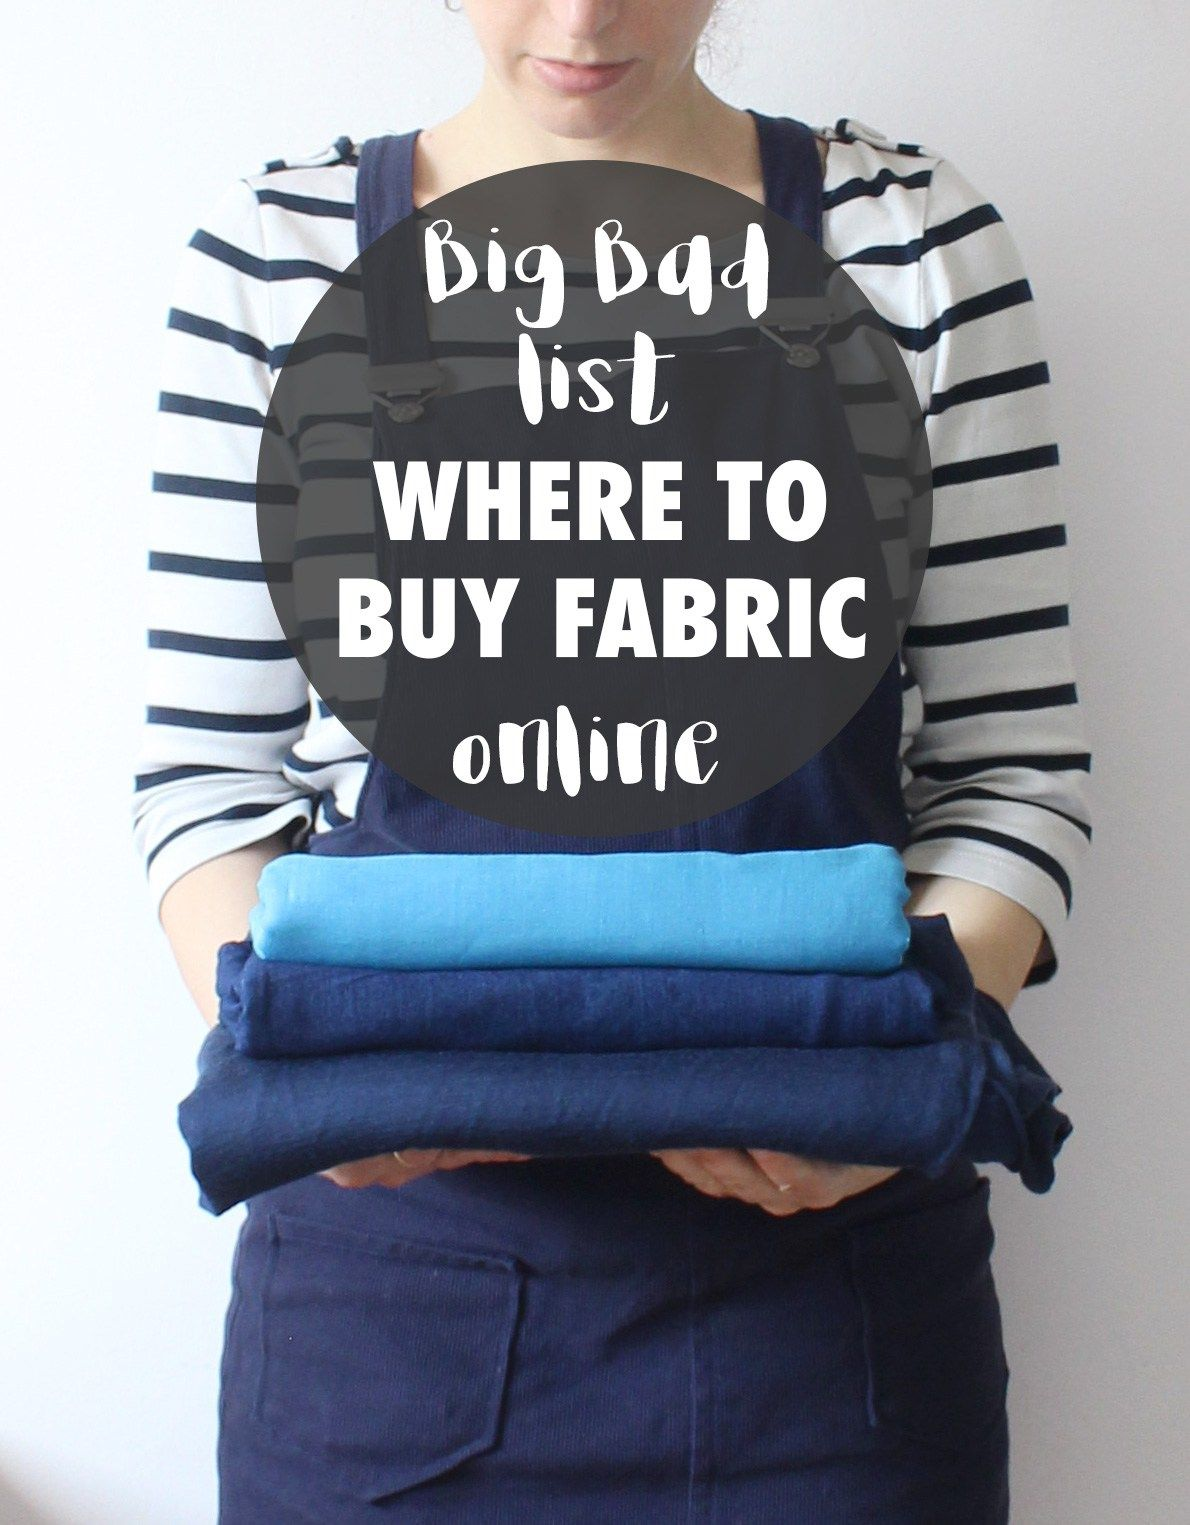 big bad list of where to buy fabric online buy fabric online